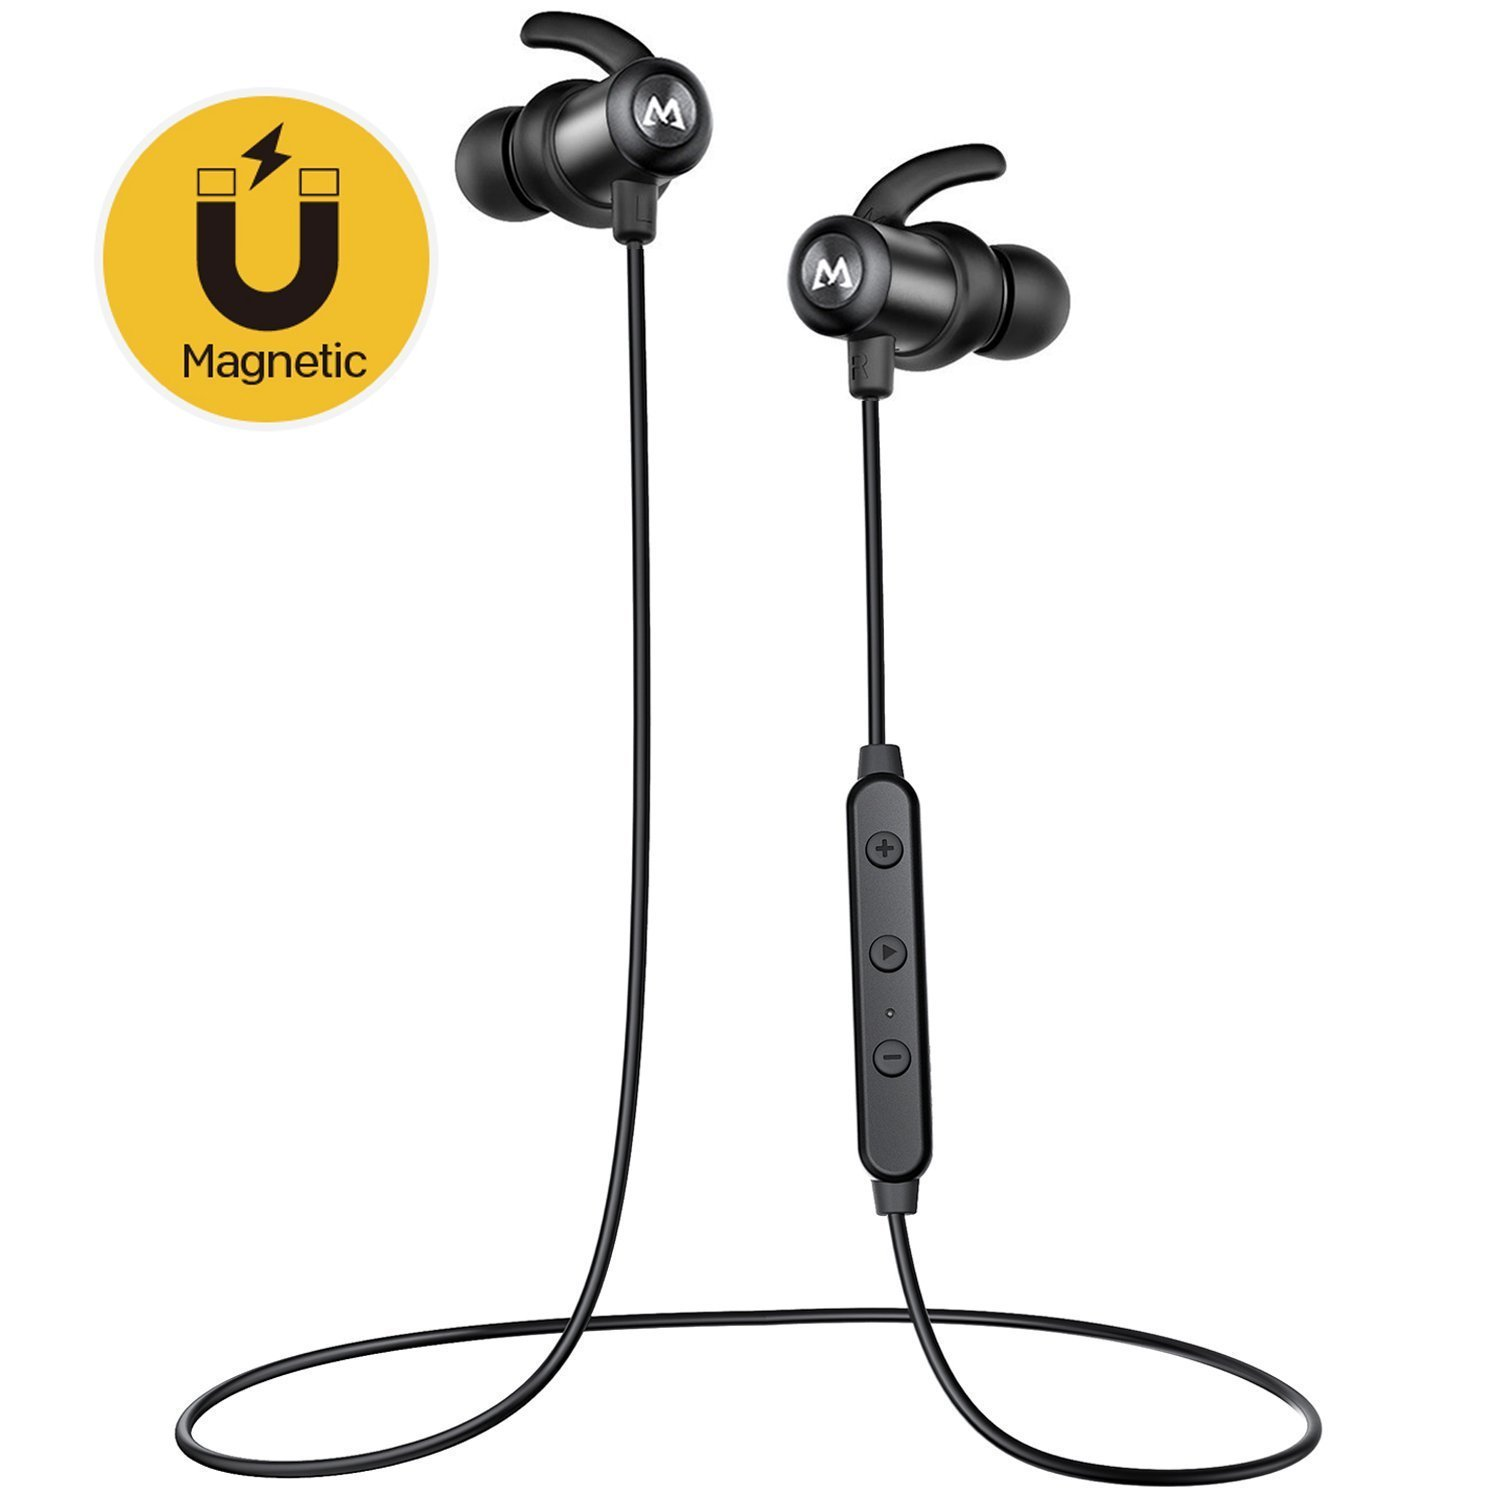 Bluetooth Sport Headphones Mpow S6 Wireless Headphones with Magnetic Connection,aptX Stereo IPX6 Bluetooth 4.1 Earbuds Headset,Nano Coating Sweatproof Sport In-Ear Earphones with Inline Control with MIC for Running, Jogging, Workout -Black MPBH205AB-CA